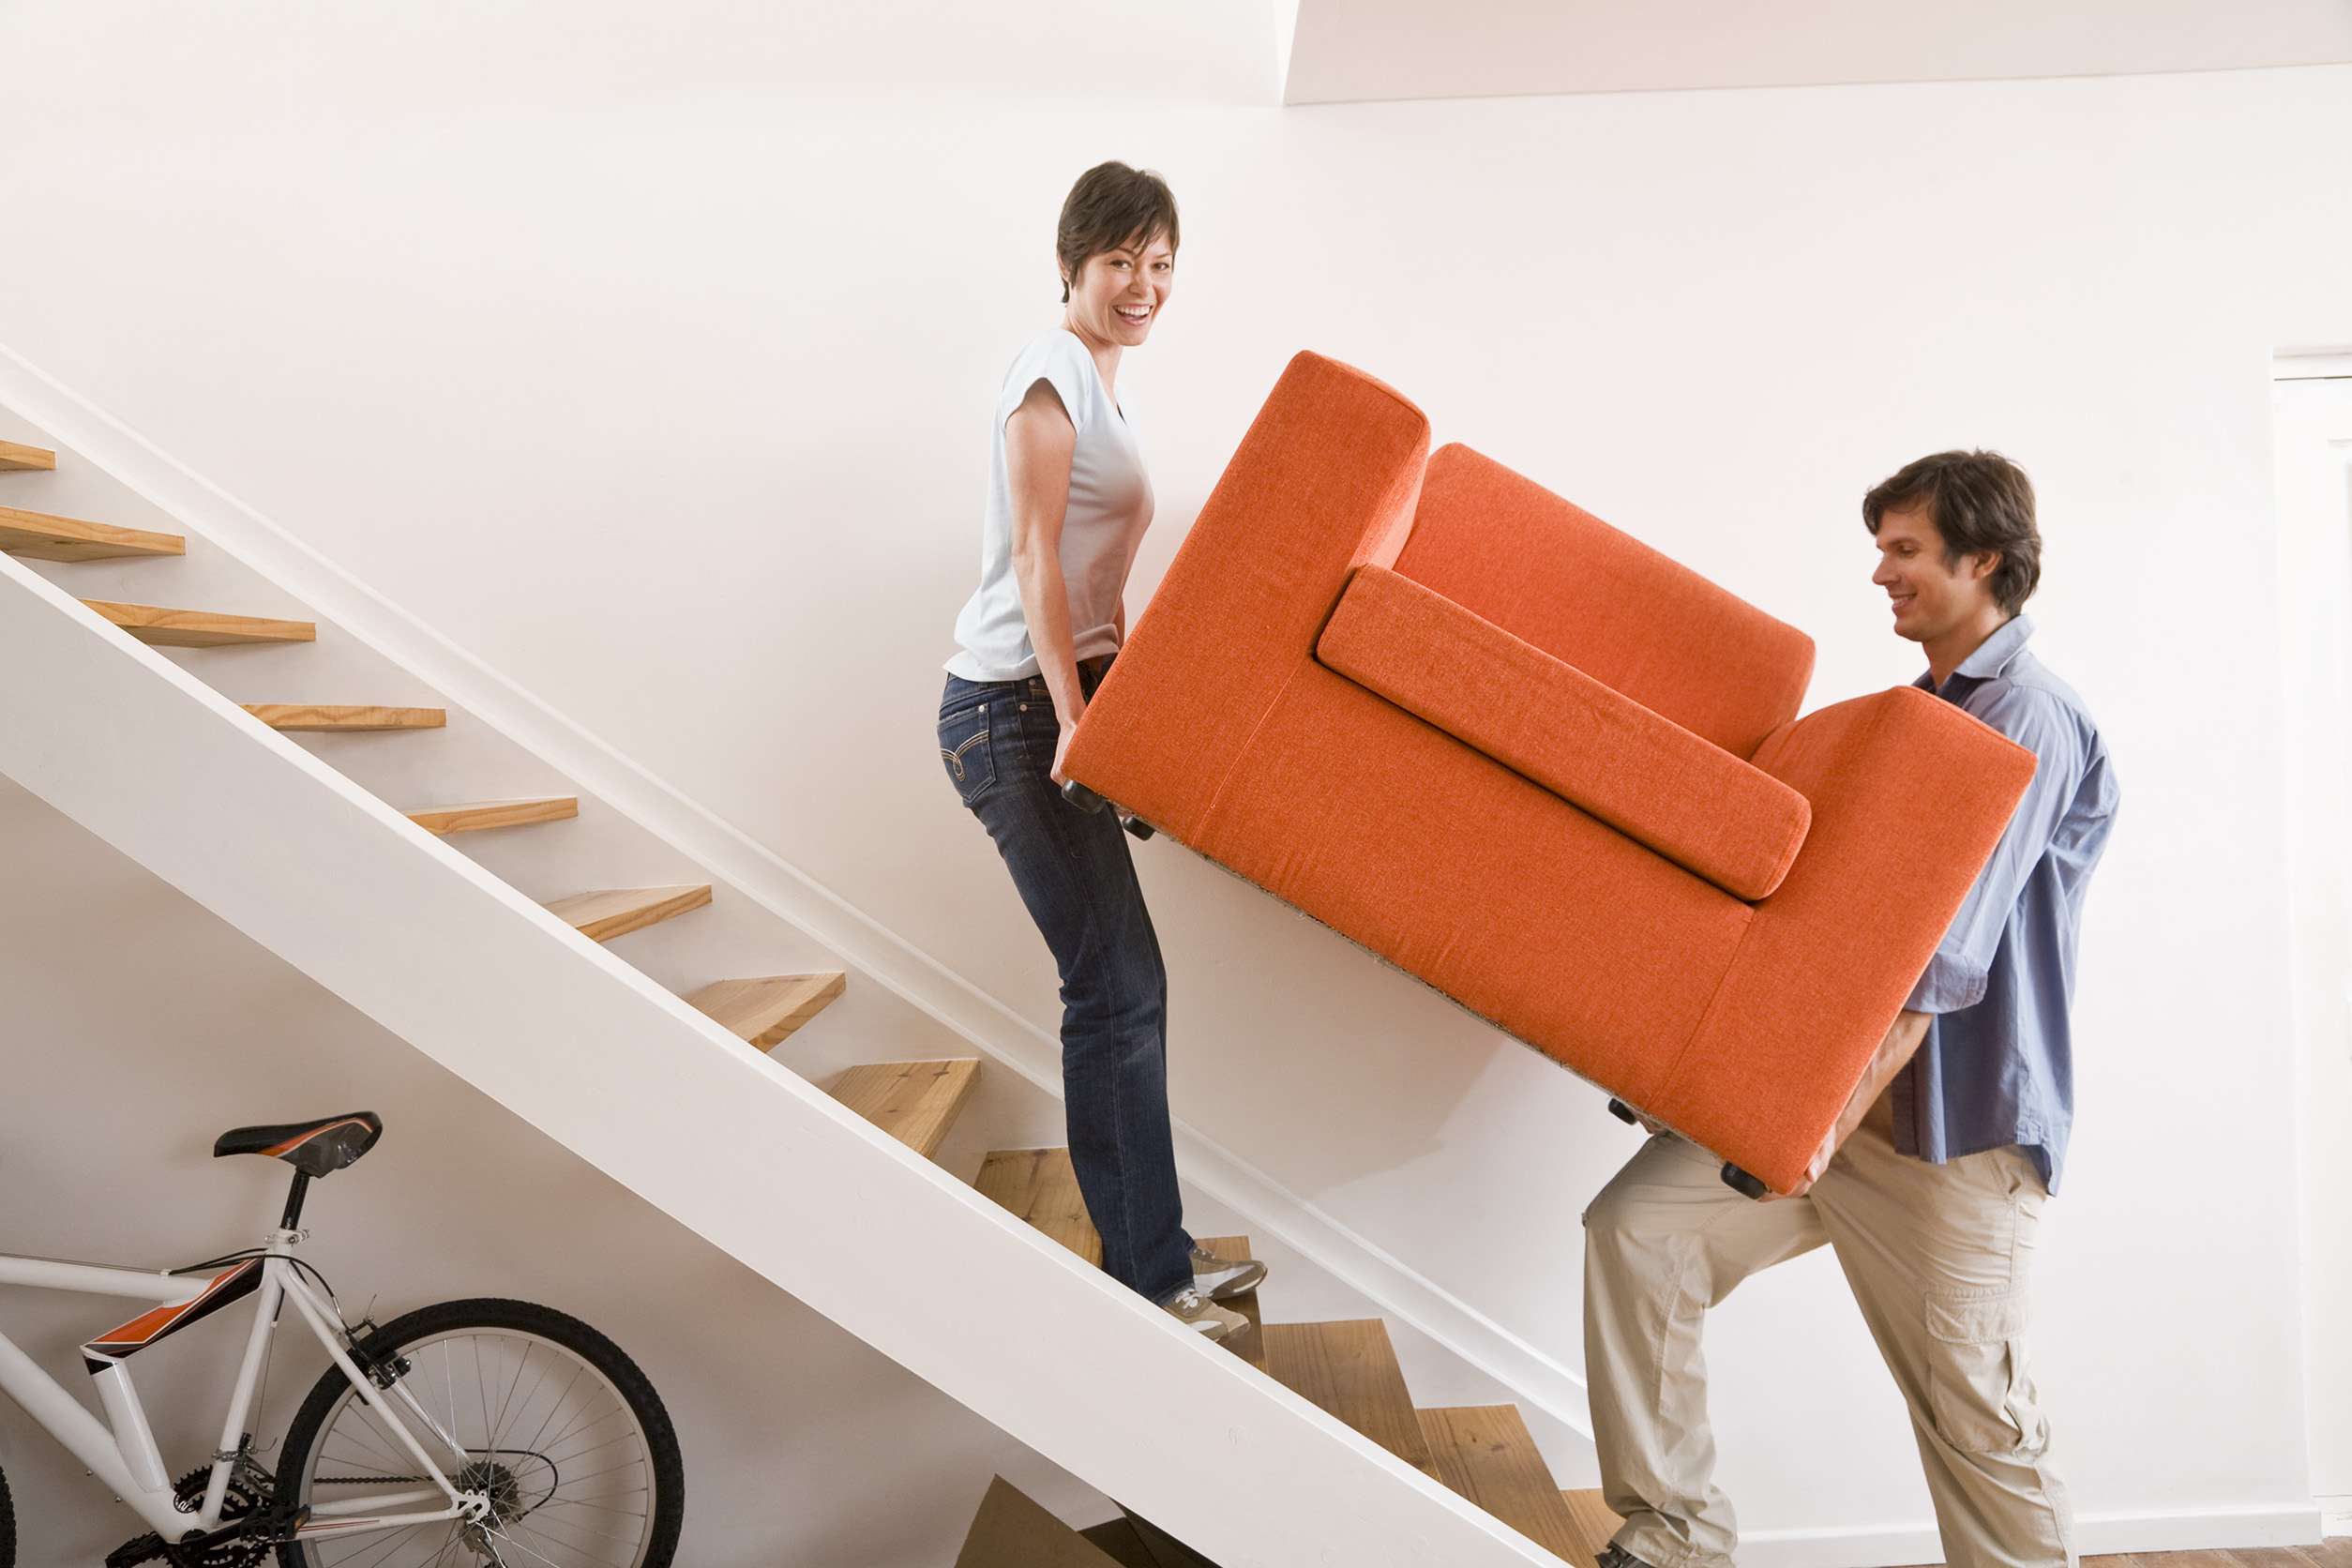 Finding a mover: The grandma rule, rules